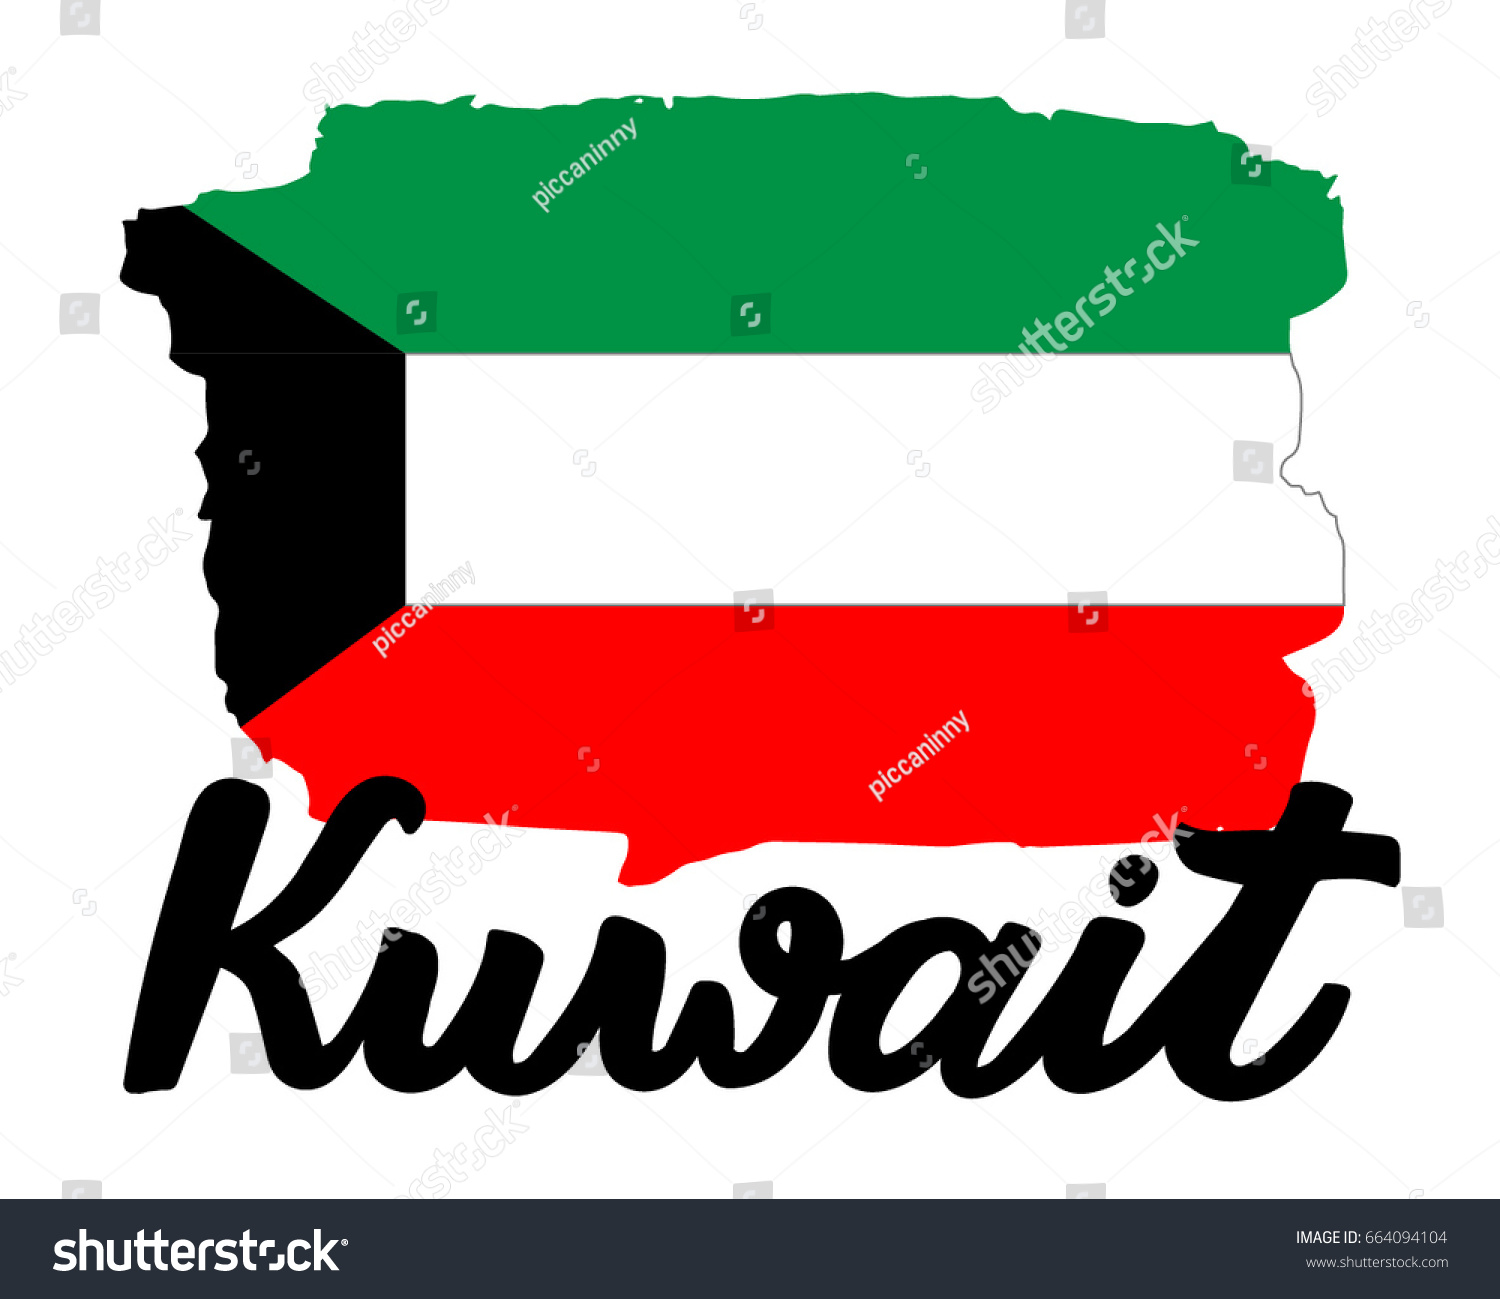 Image result for Kuwait graphic name